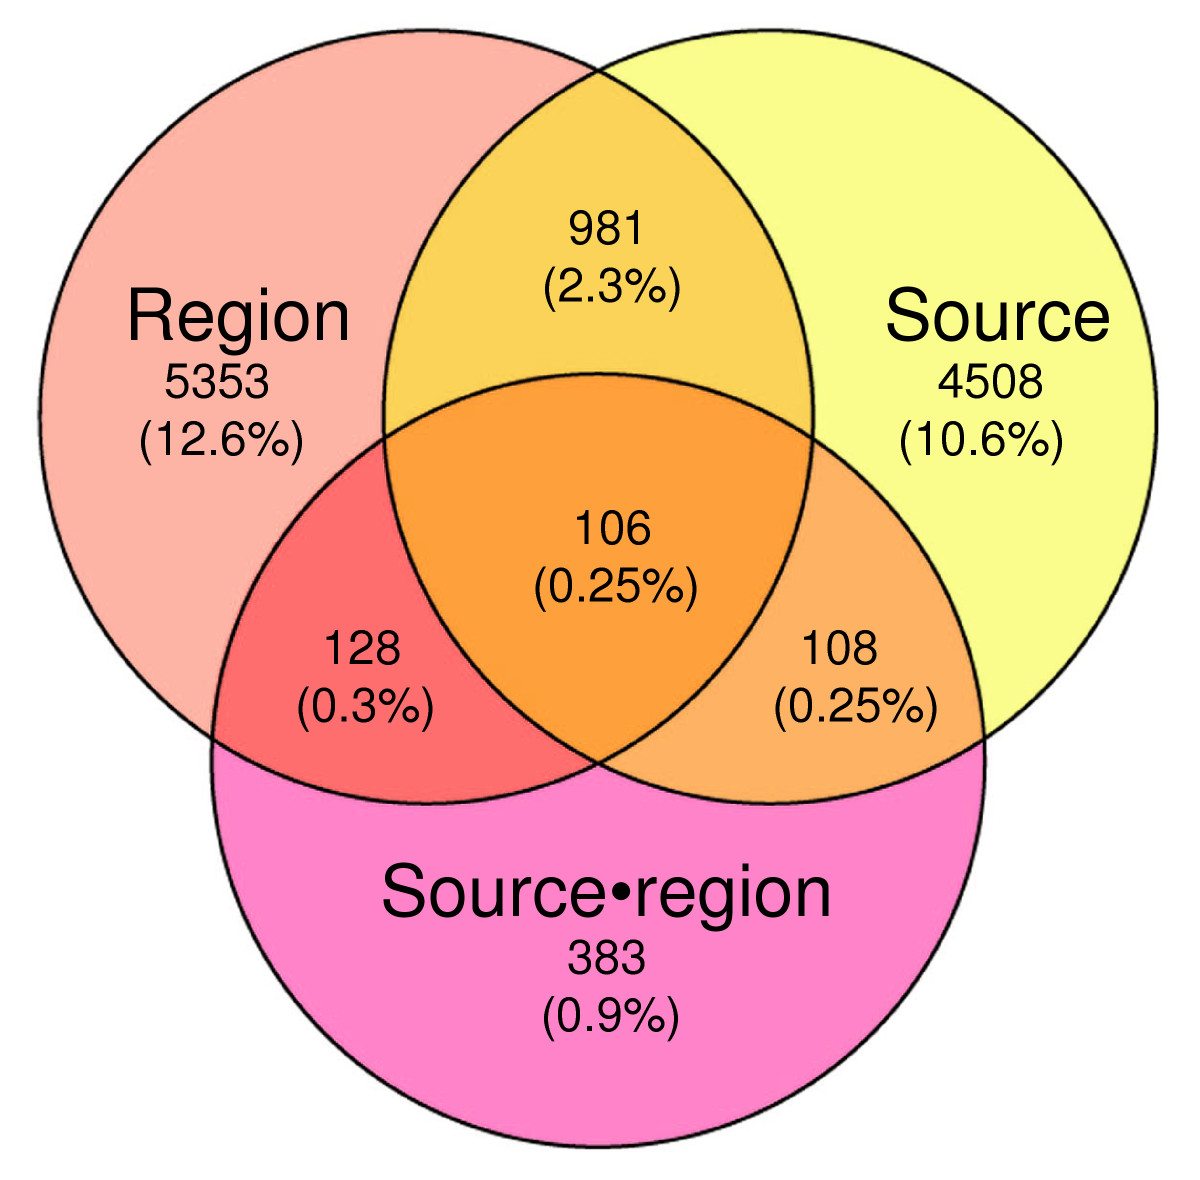 https://static-content.springer.com/image/art%3A10.1186%2Fgb-2005-6-13-r112/MediaObjects/13059_2005_Article_1147_Fig1_HTML.jpg